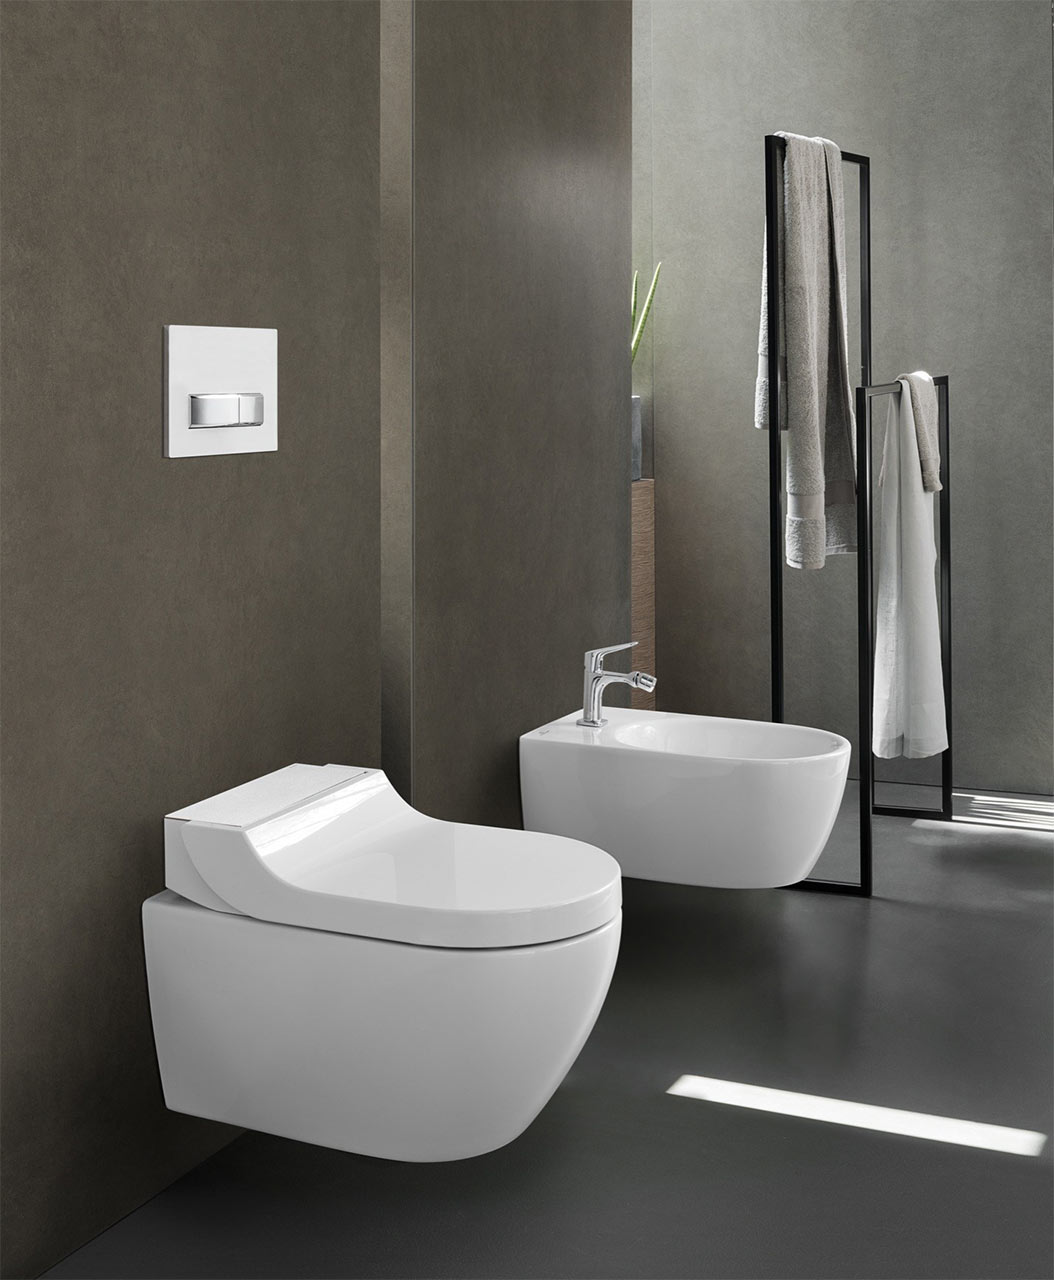 wc aquaclean tuma by geberit. Black Bedroom Furniture Sets. Home Design Ideas